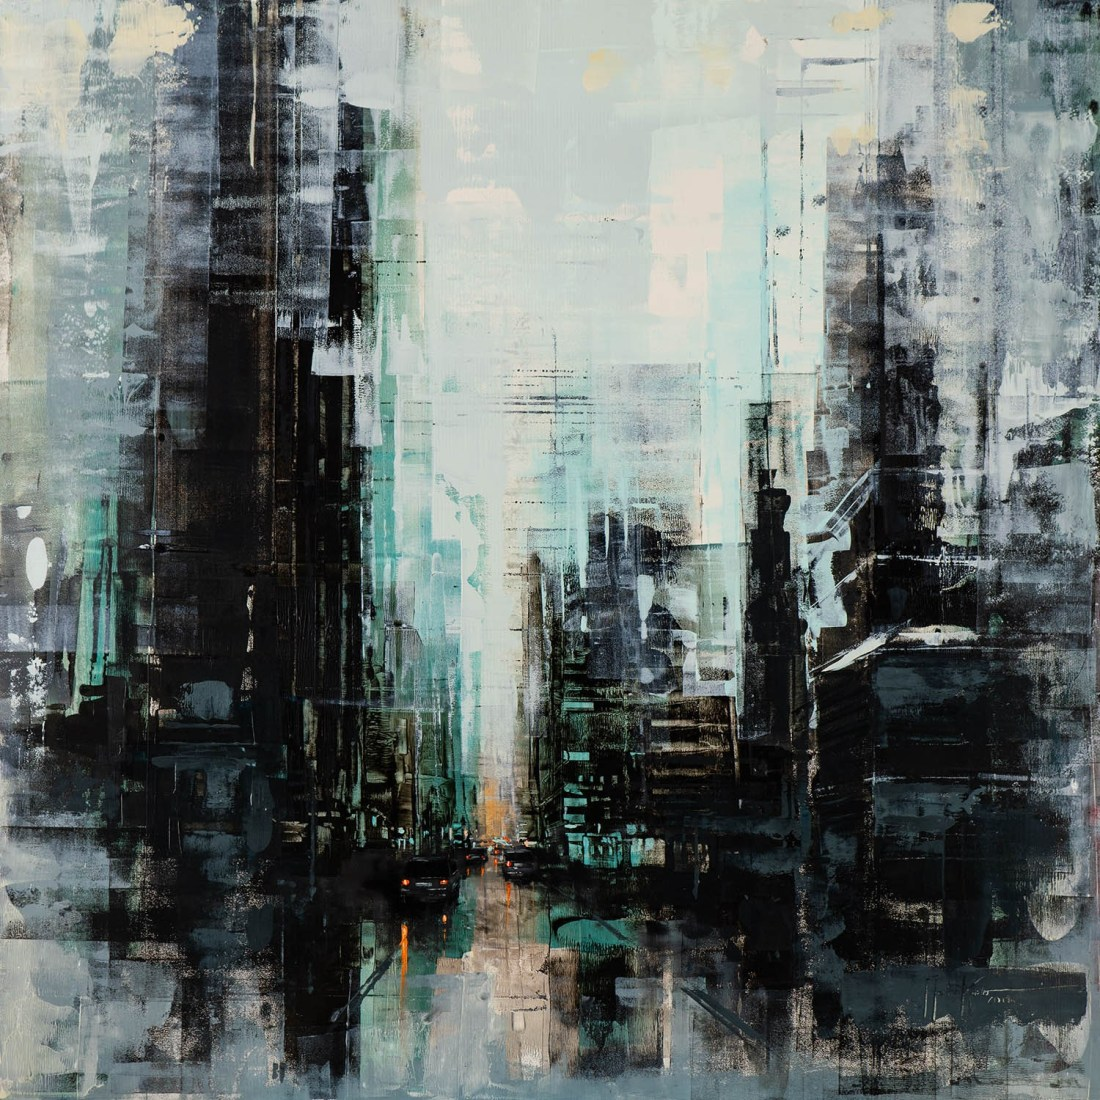 Martin Köster, Singapore noon II, Oil on panel, Unikat, 2019, 100 x 100 cm